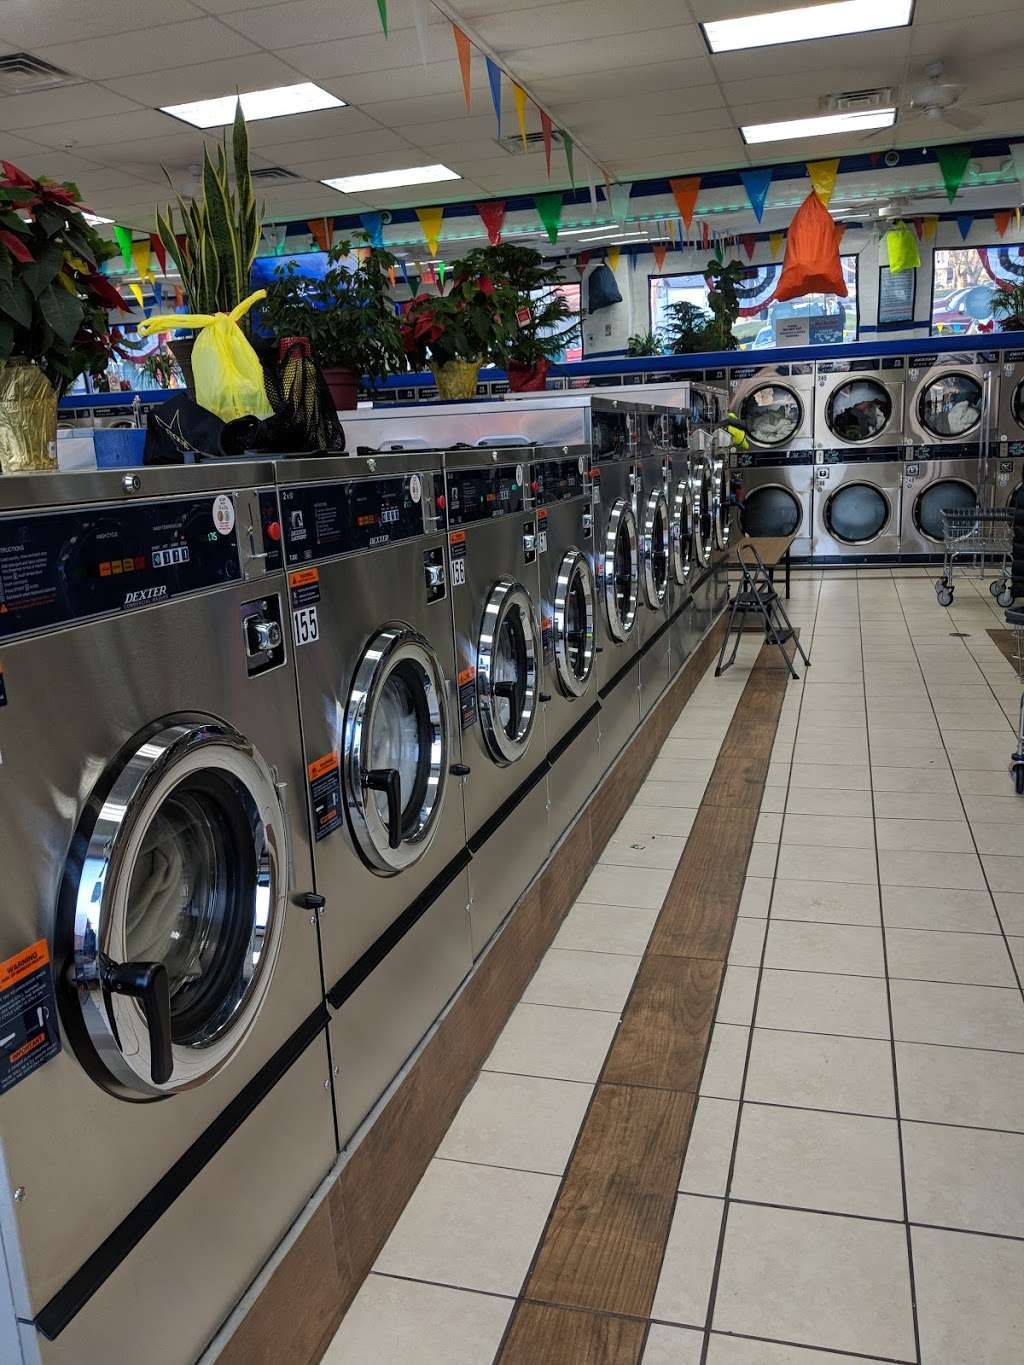 LAUNDRY WAVE - laundry  | Photo 5 of 10 | Address: 500 Lexington Ave, Clifton, NJ 07011, USA | Phone: (862) 225-9339